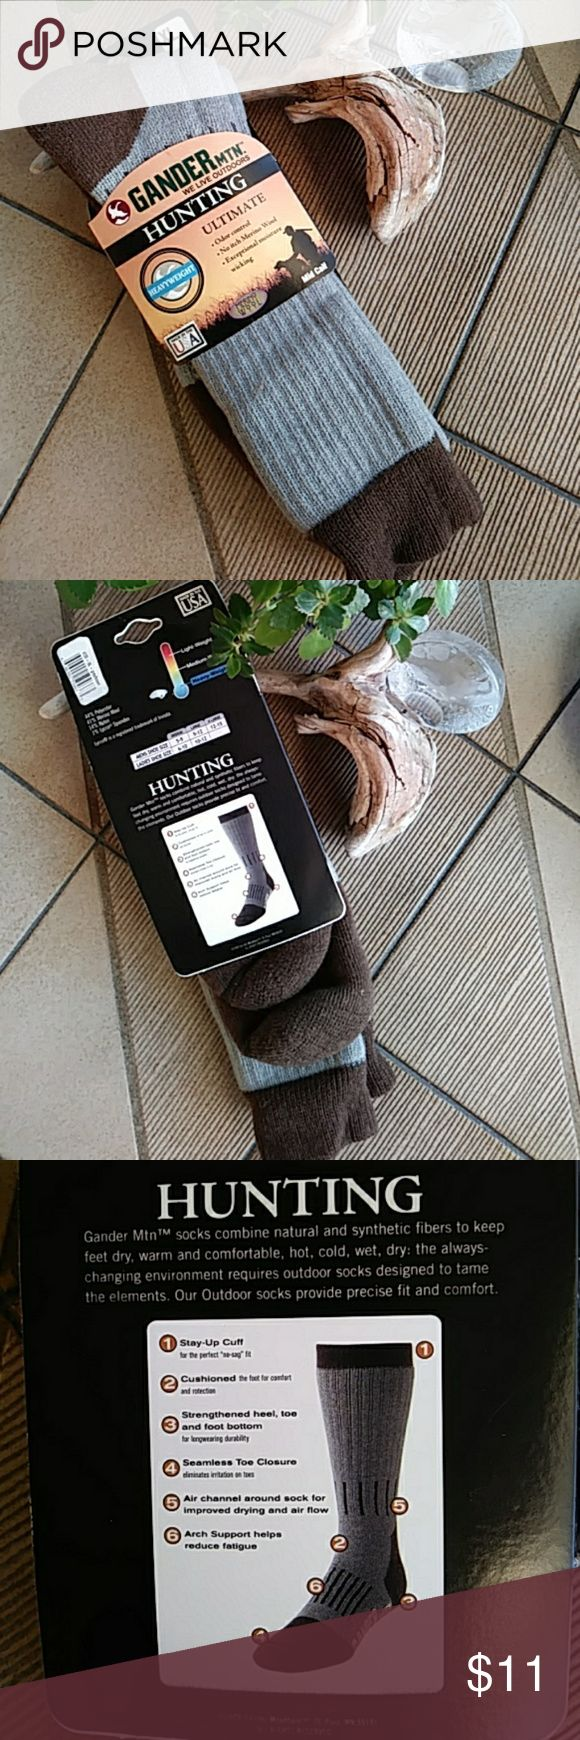 HUNTING SOCKS - GANDER MTN. GANDER MOUNTAIN heavyweight over the calf Merino wool hunting socks. Heavyweight, Odor Control, no itch Merino wool, exceptional moisture wicking. Cushioned for comfort. Strengthened heel, toe, and foot bottom. Over the calf length with stay up cuff. Air channel around sock for improved drying and air flow. Arch support helps reduce fatigue. 44% polyester, 41% Merino wool, 14% nylon, 1% Lycra spandex. Machine washable. Size XL (men's shoe size 12 to 15). GANDER…